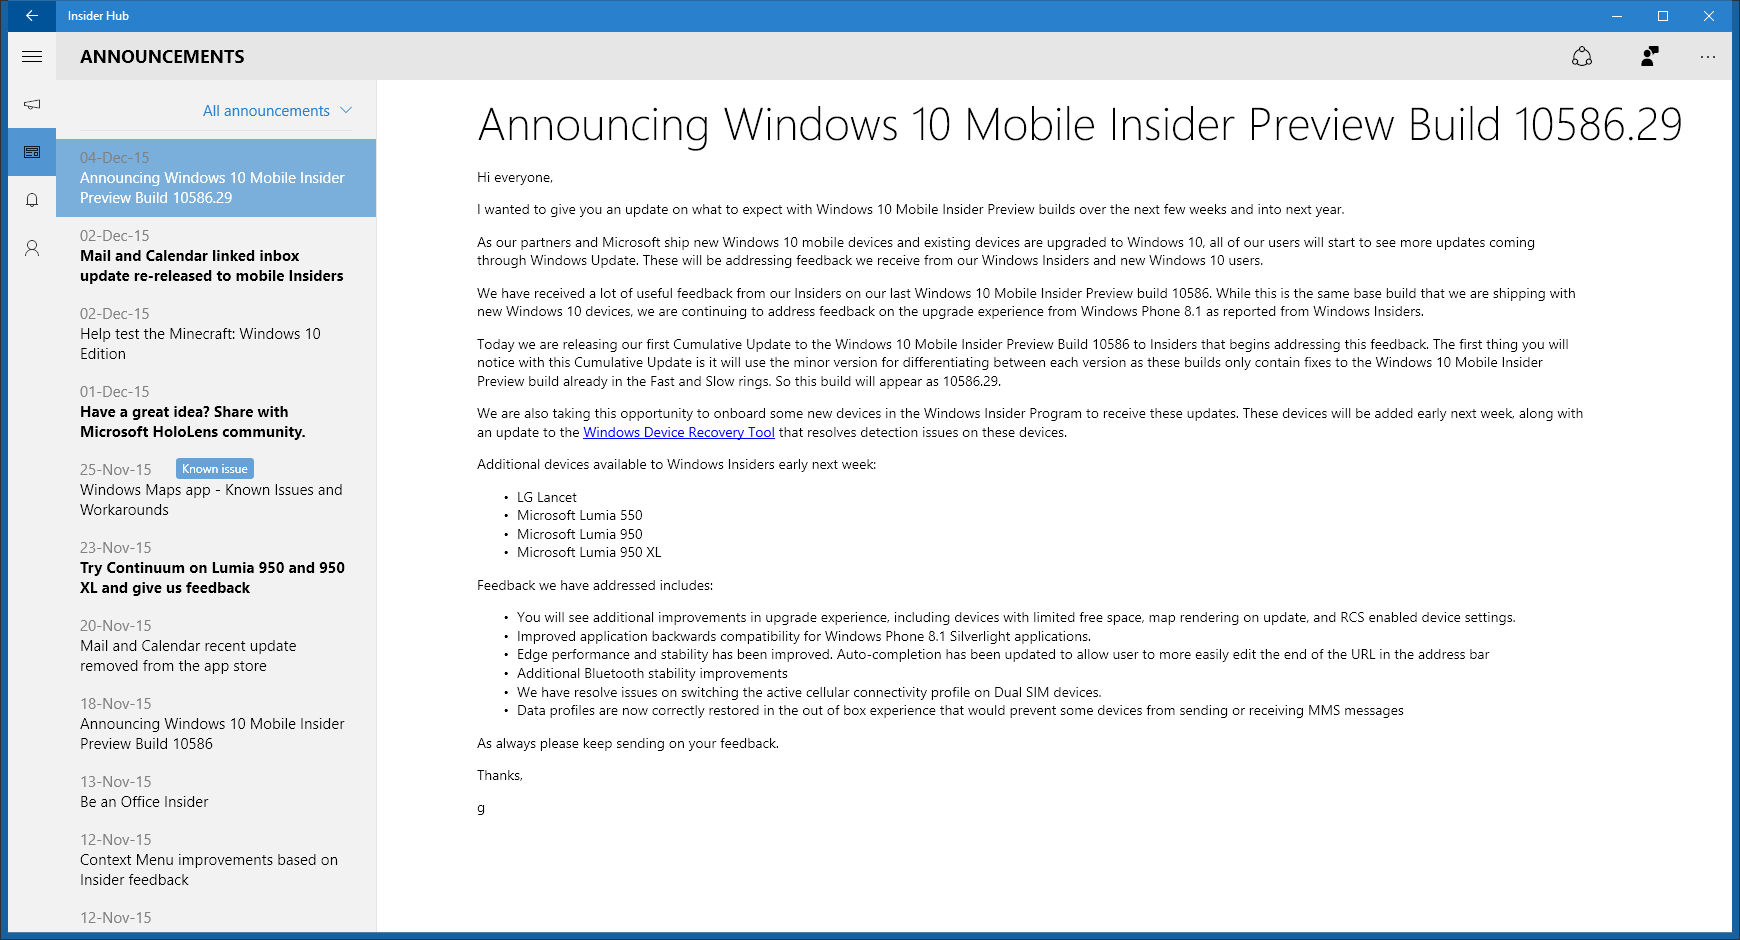 Windows 10 Mobile Insider Preview for Phones - Update to | Tutorials